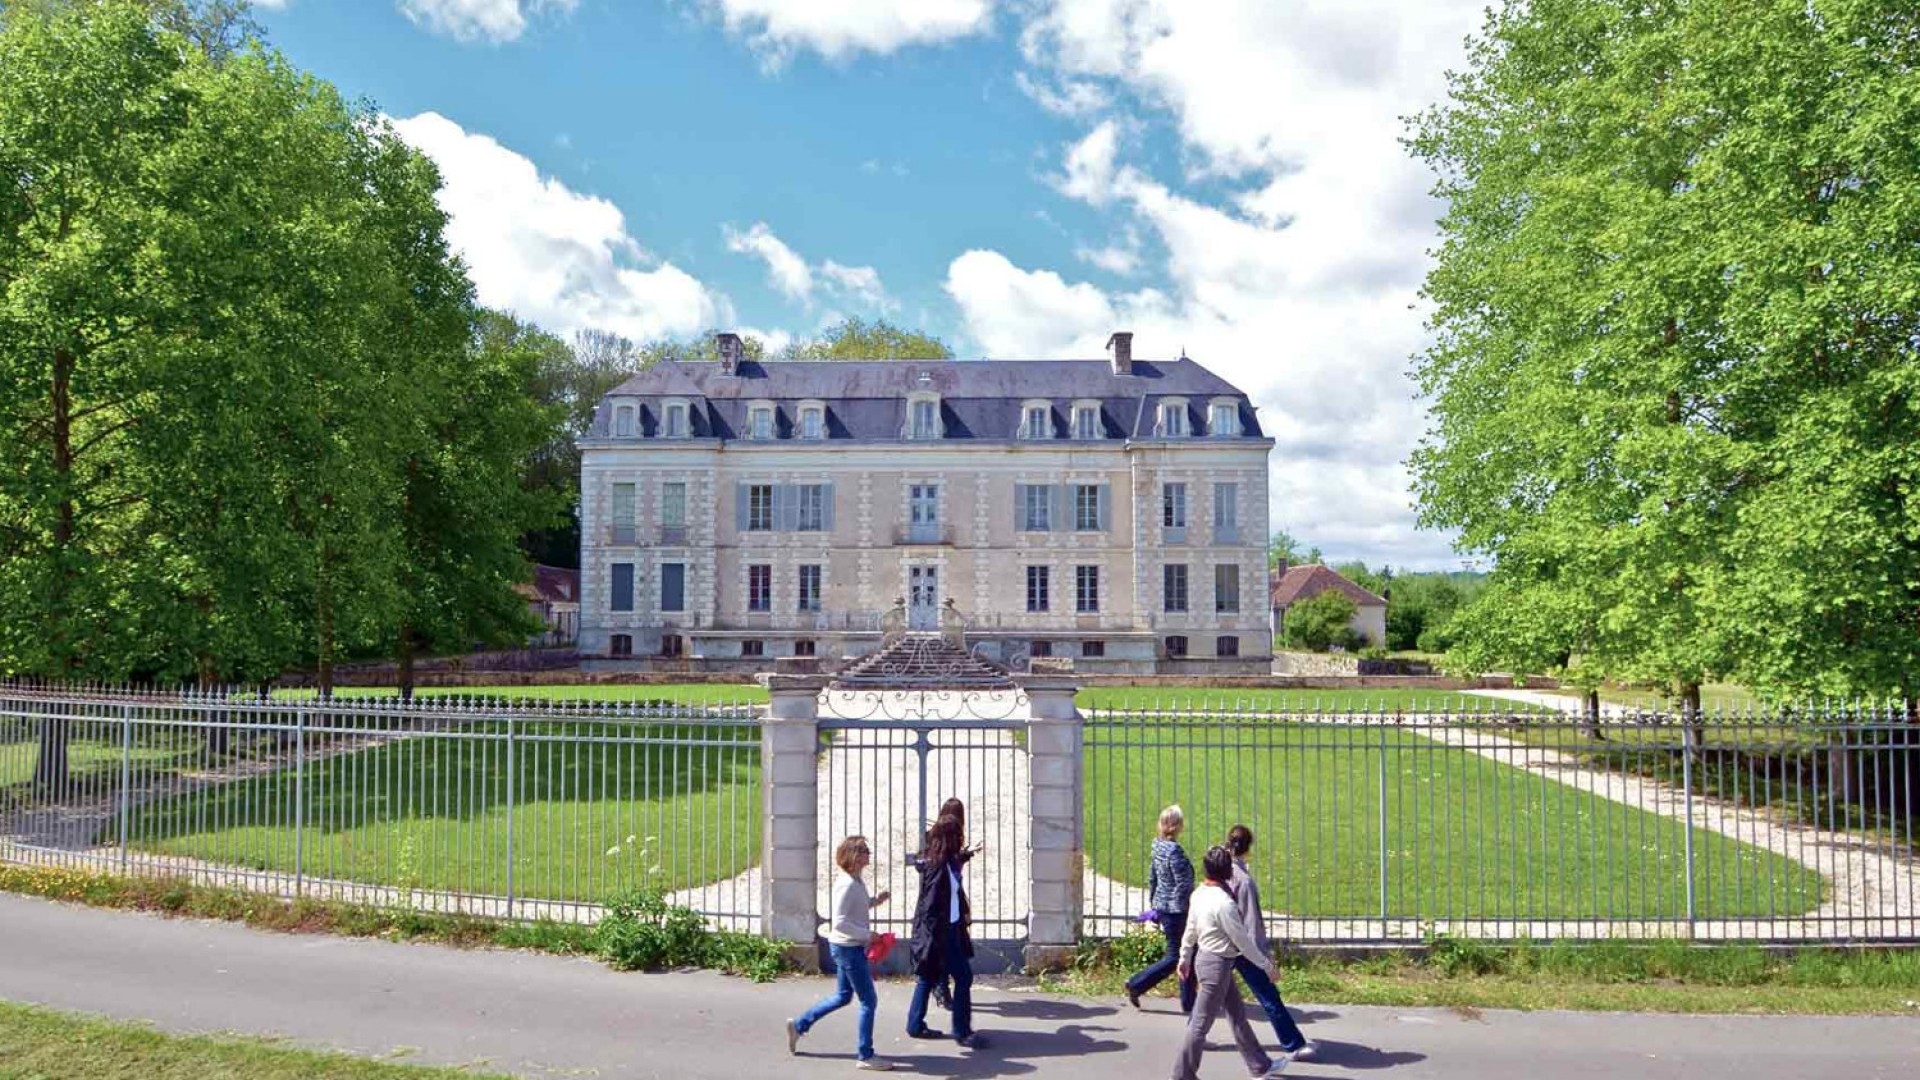 chateau bellombre in France